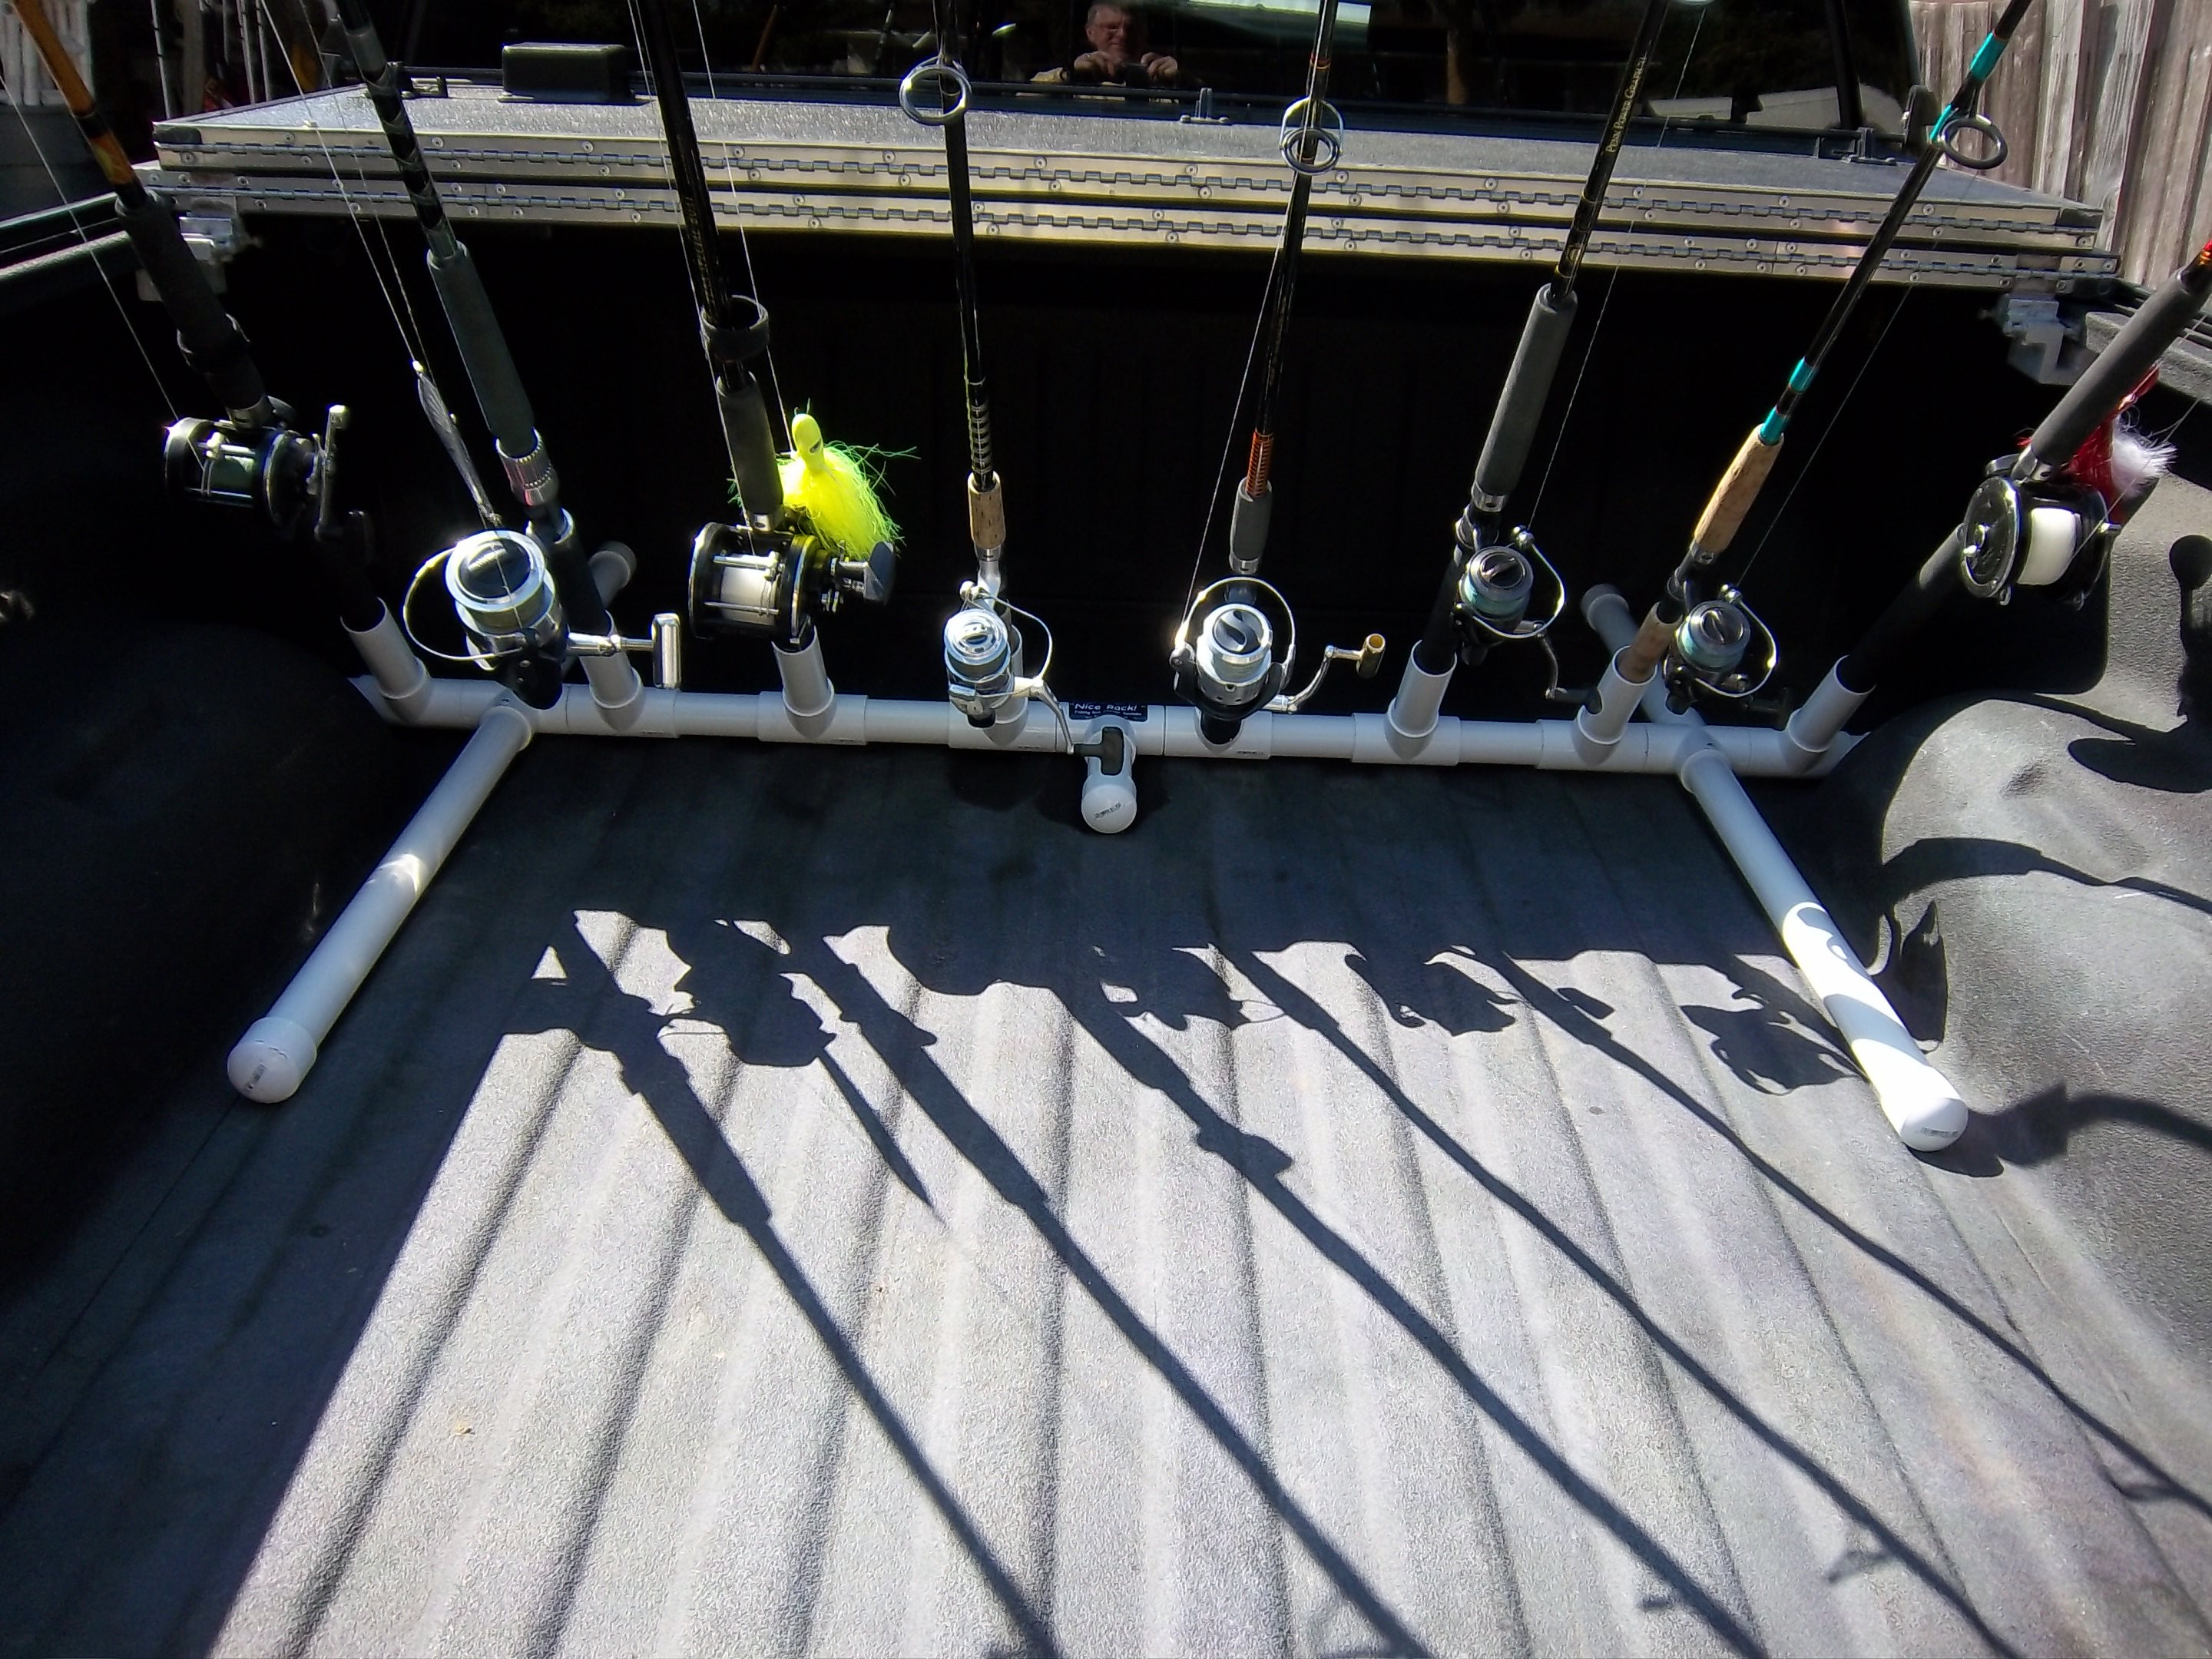 Best ideas about DIY Rod Rack . Save or Pin Truck bed fishing rod transport rack holder $40 The Now.